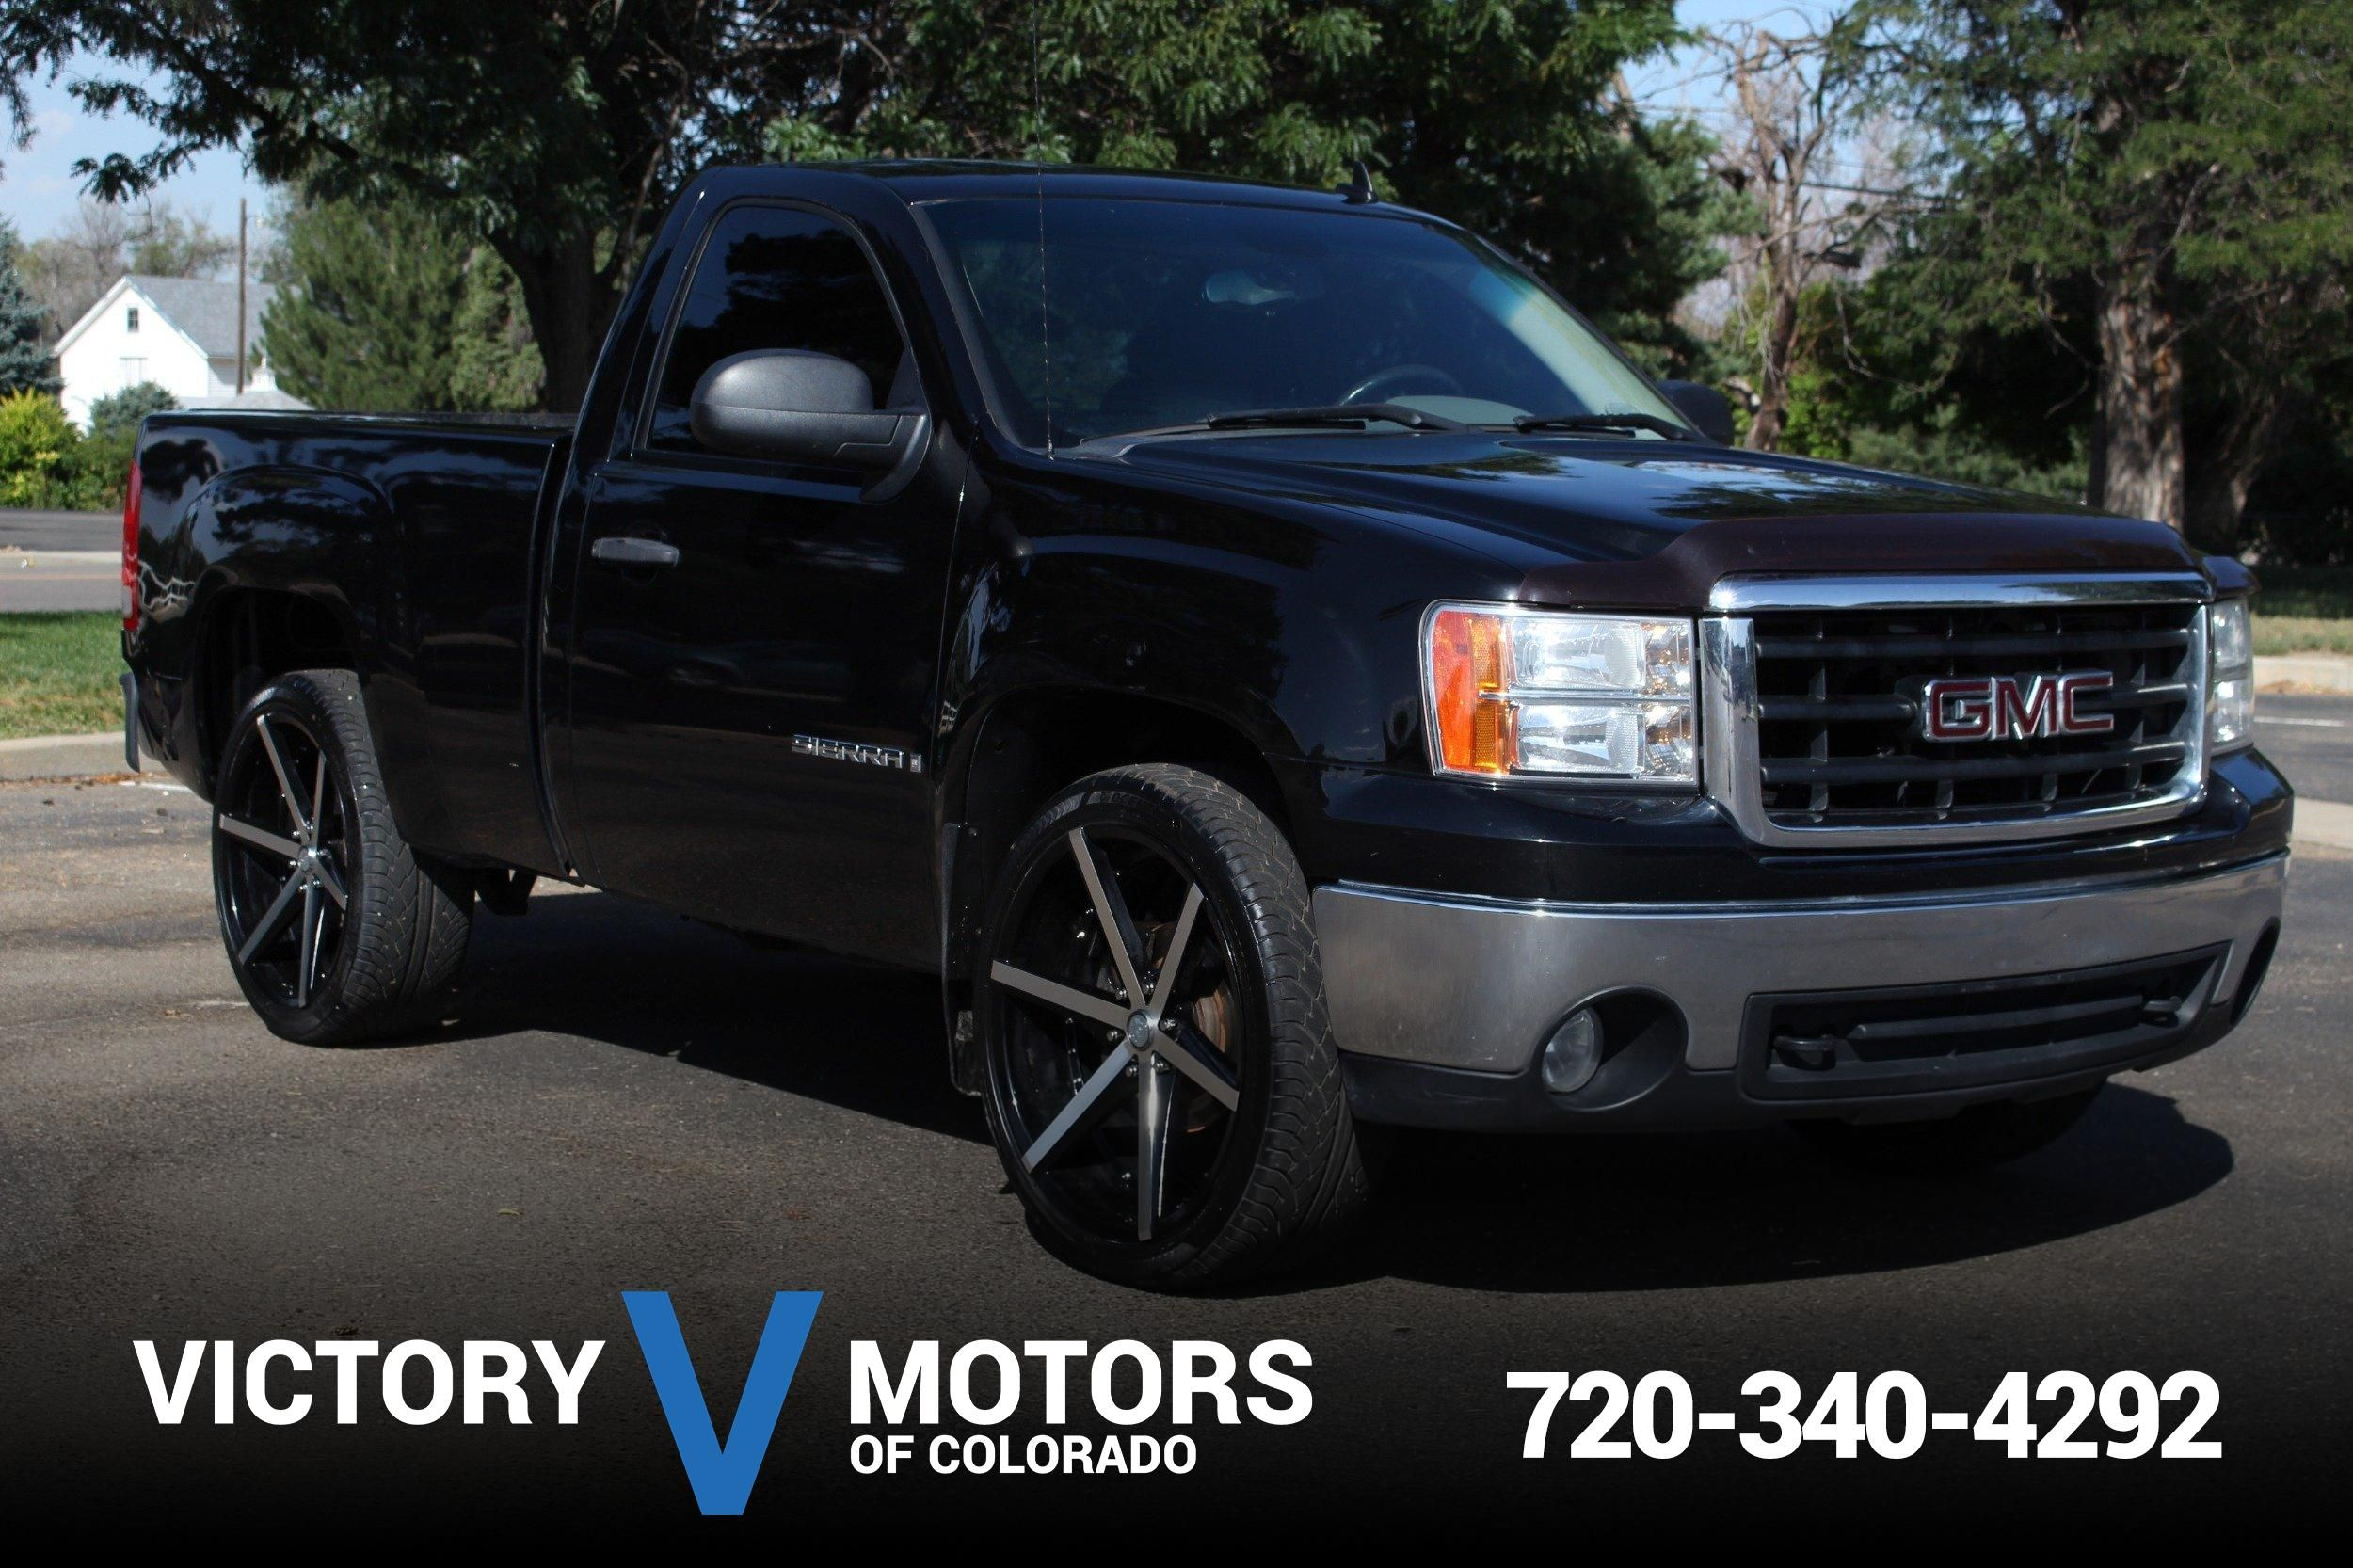 2008 Gmc Sierra 1500 Victory Motors Of Colorado